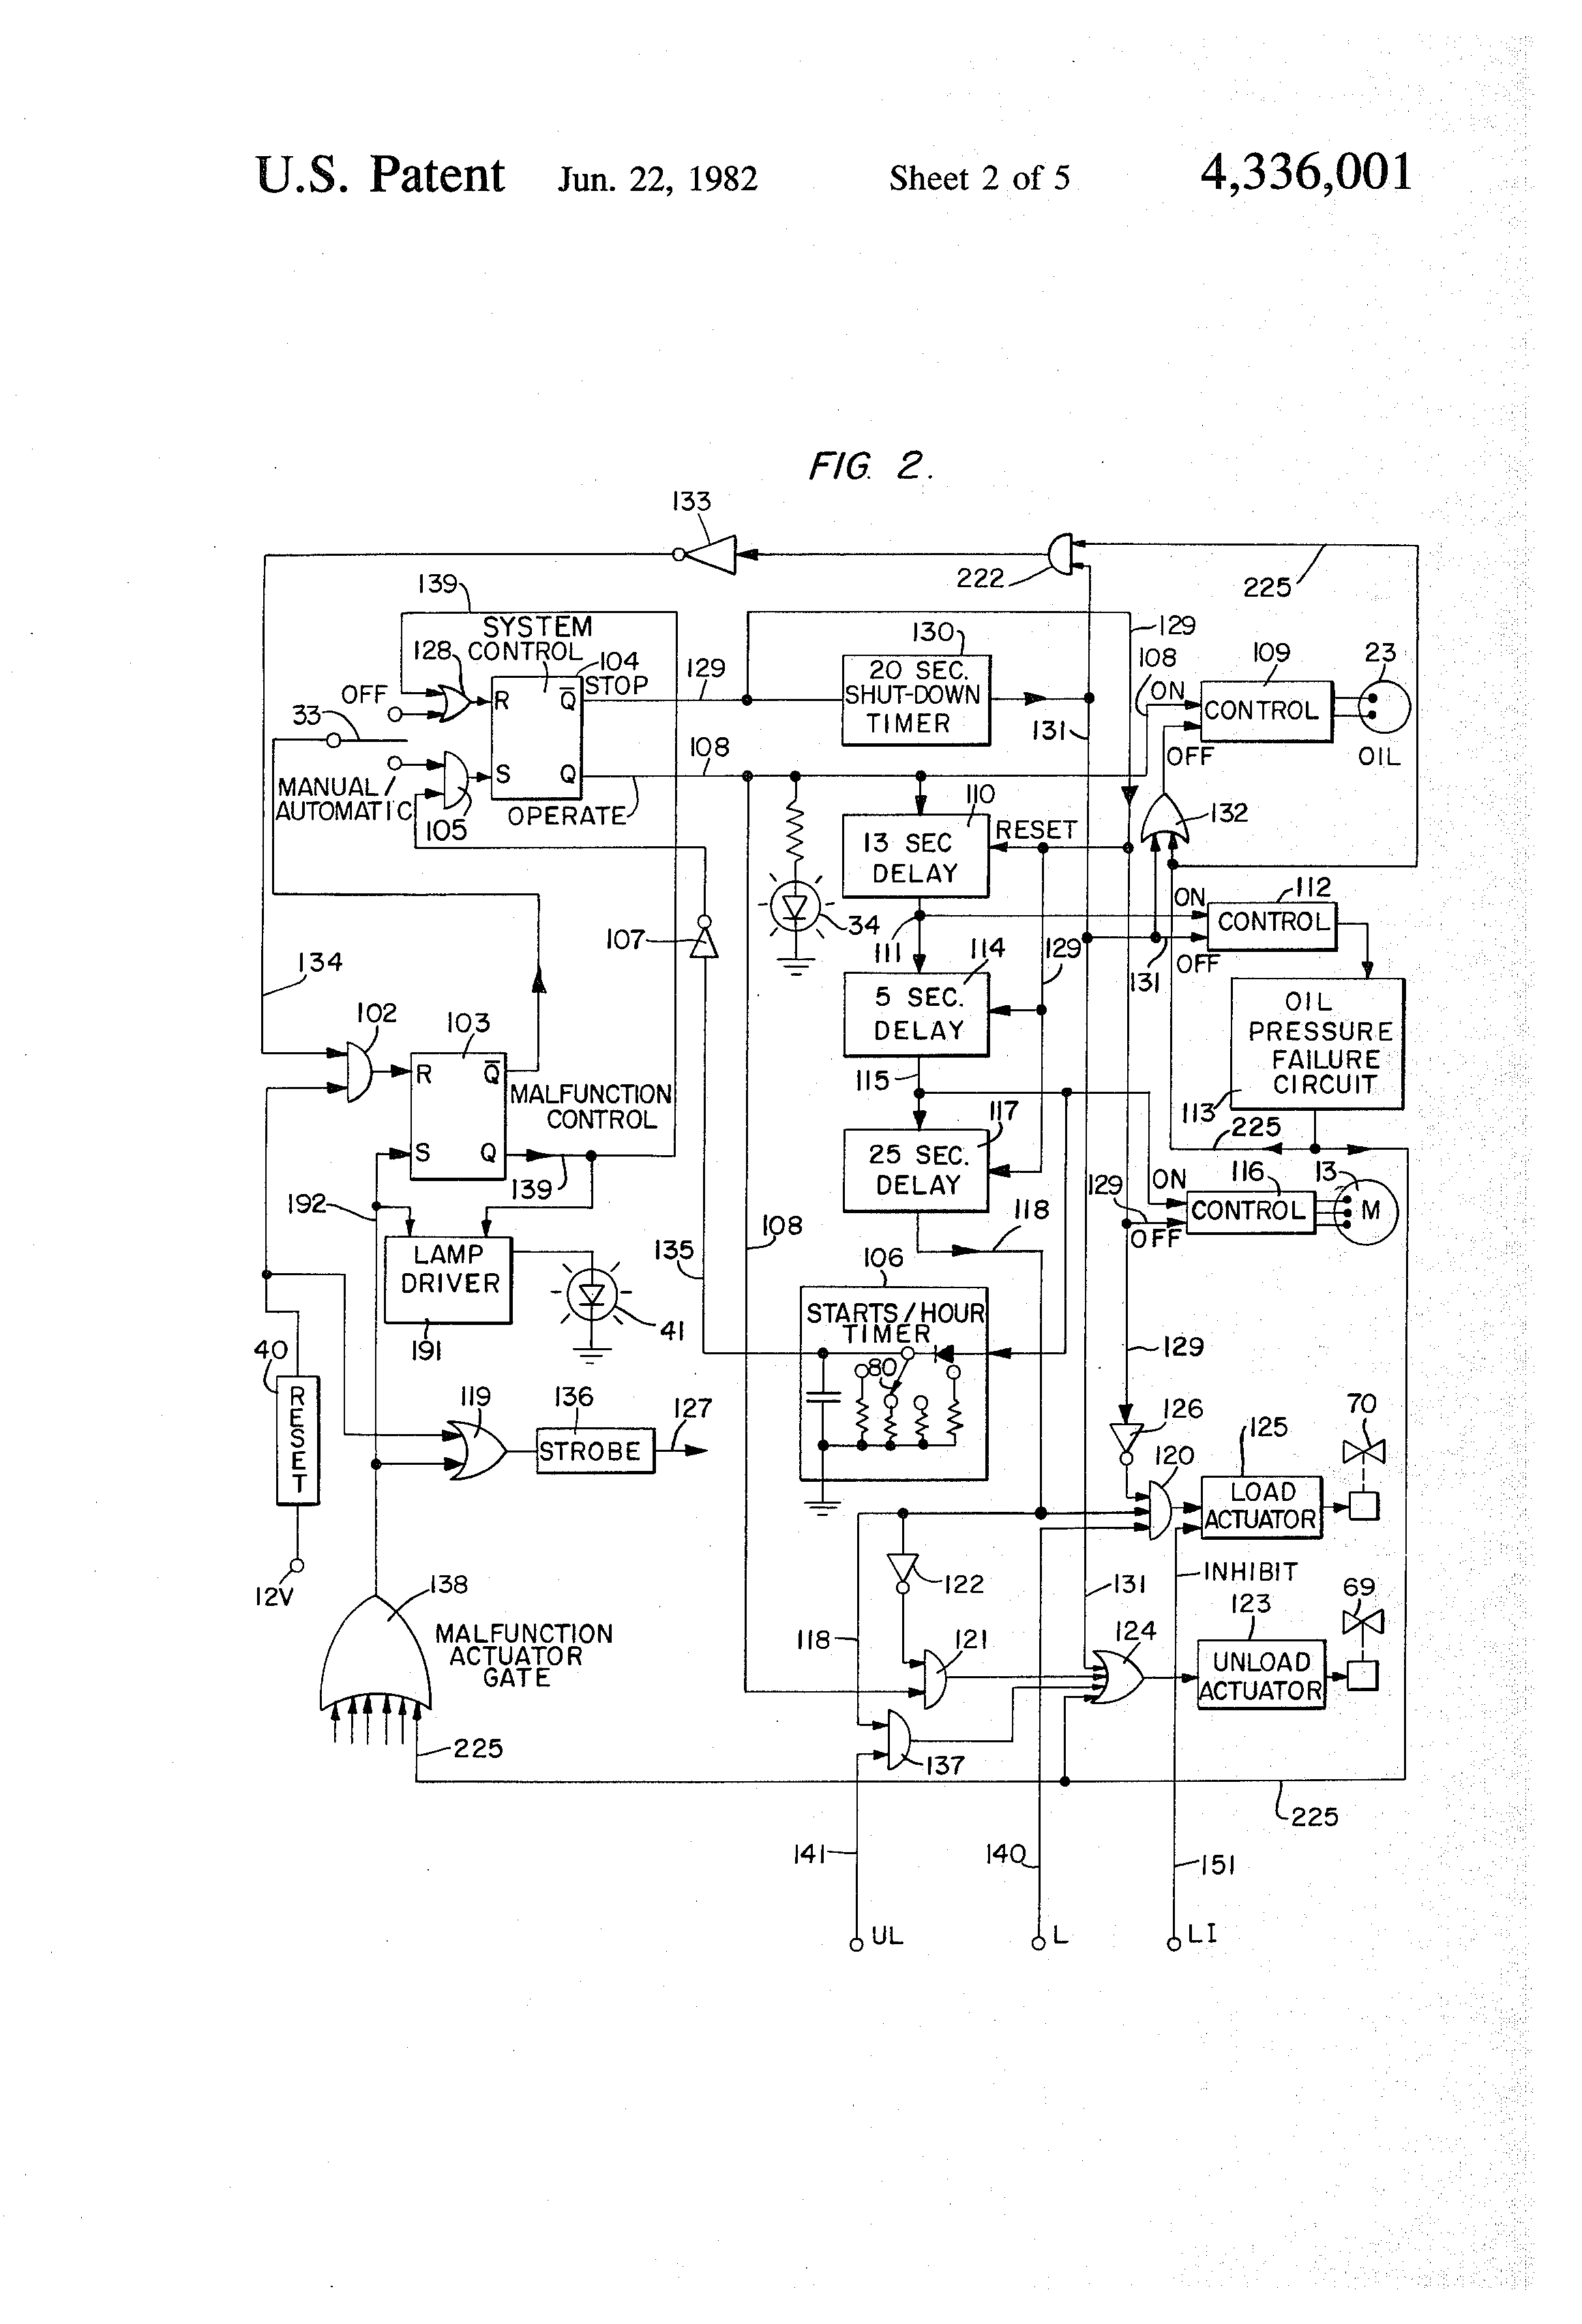 US4336001 2 patent us4336001 solid state compressor control system google atlas copco 185 compressor wiring diagram at nearapp.co